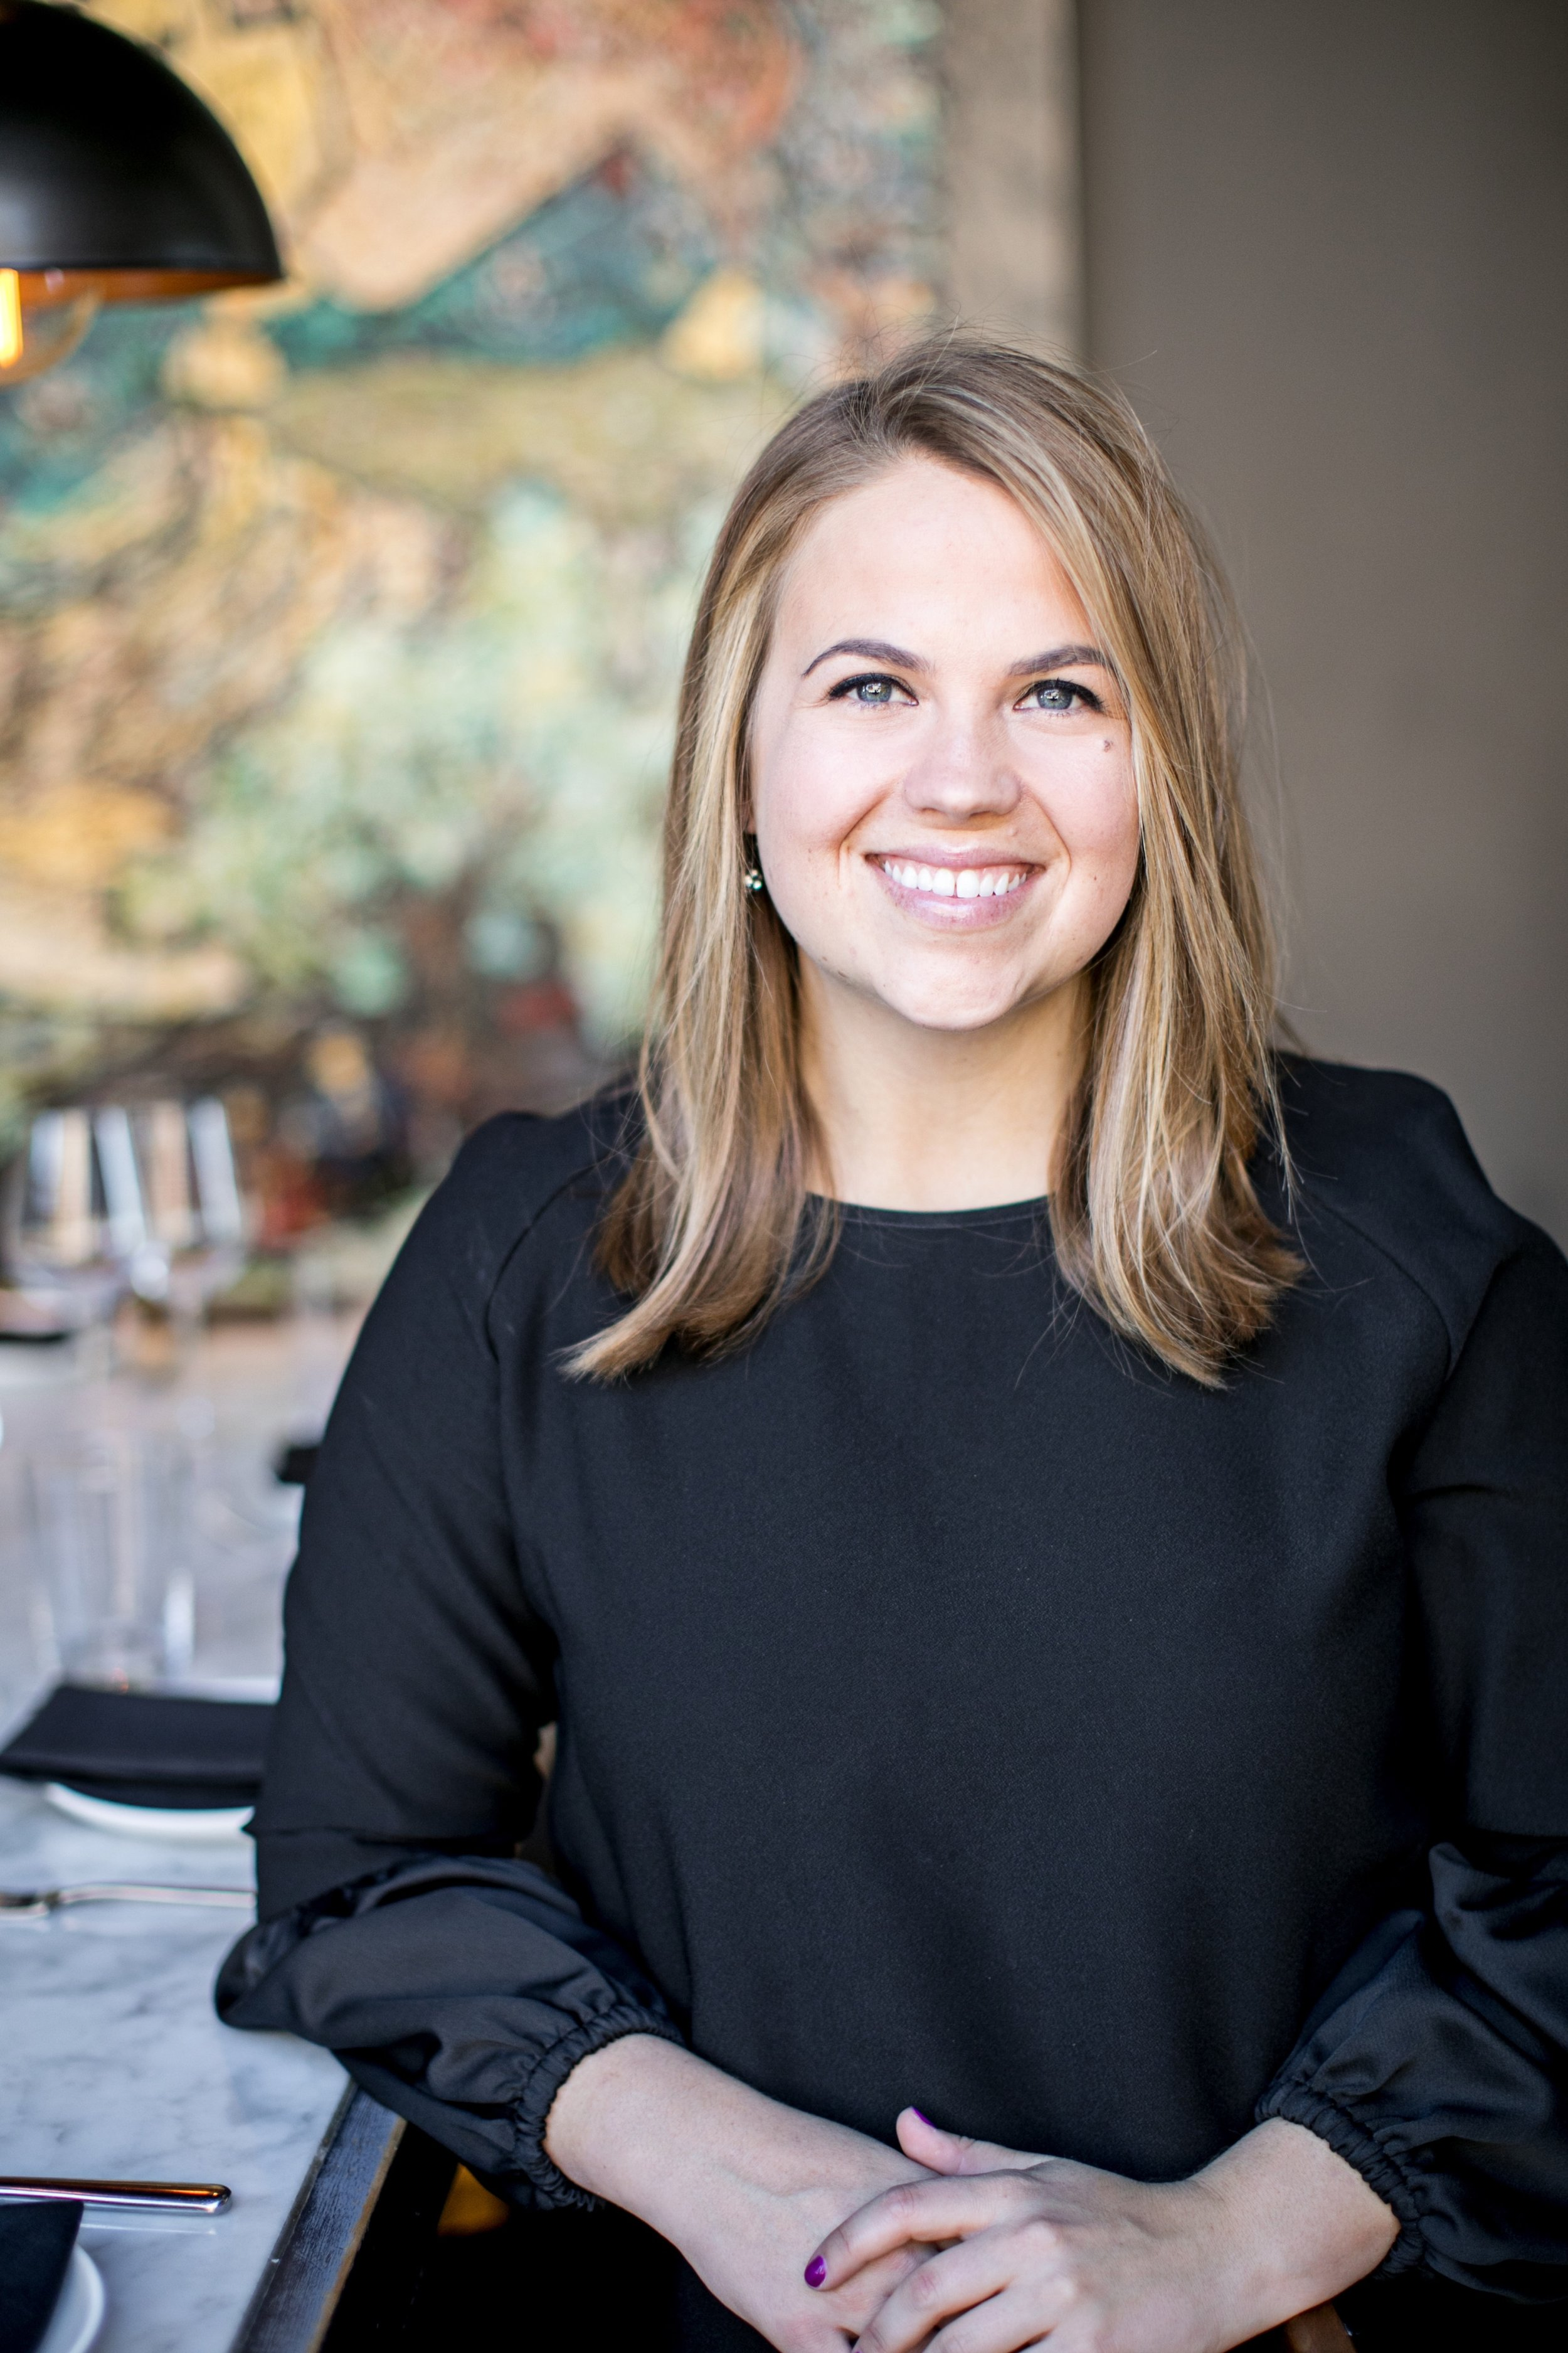 Born in Rochester, New York, Sydney Cummiskey has been with CHG since October 2012. She started with the company as a hostess at Double Zero in Sandy Spring and quickly expanded her role beyond restaurant operations to additional corporate level tasks. She assumed management of all CHG's social media accounts in 2013 and in 2016 was promoted to Marketing Manager. In her current role, she is responsible for the creation and usage of all CHG branded collateral, email marketing, overseeing CHGs digital and social presence as well as assisting in the strategic direction of CHG's marketing direction. Sydney additionally manages our marketing intern program.  Sydney graduated from Savannah College of Art and Design - Atlanta with a B.F.A. in Fashion Marketing and Management.  Fun Fact: Sydney is a licensed Esthetician.